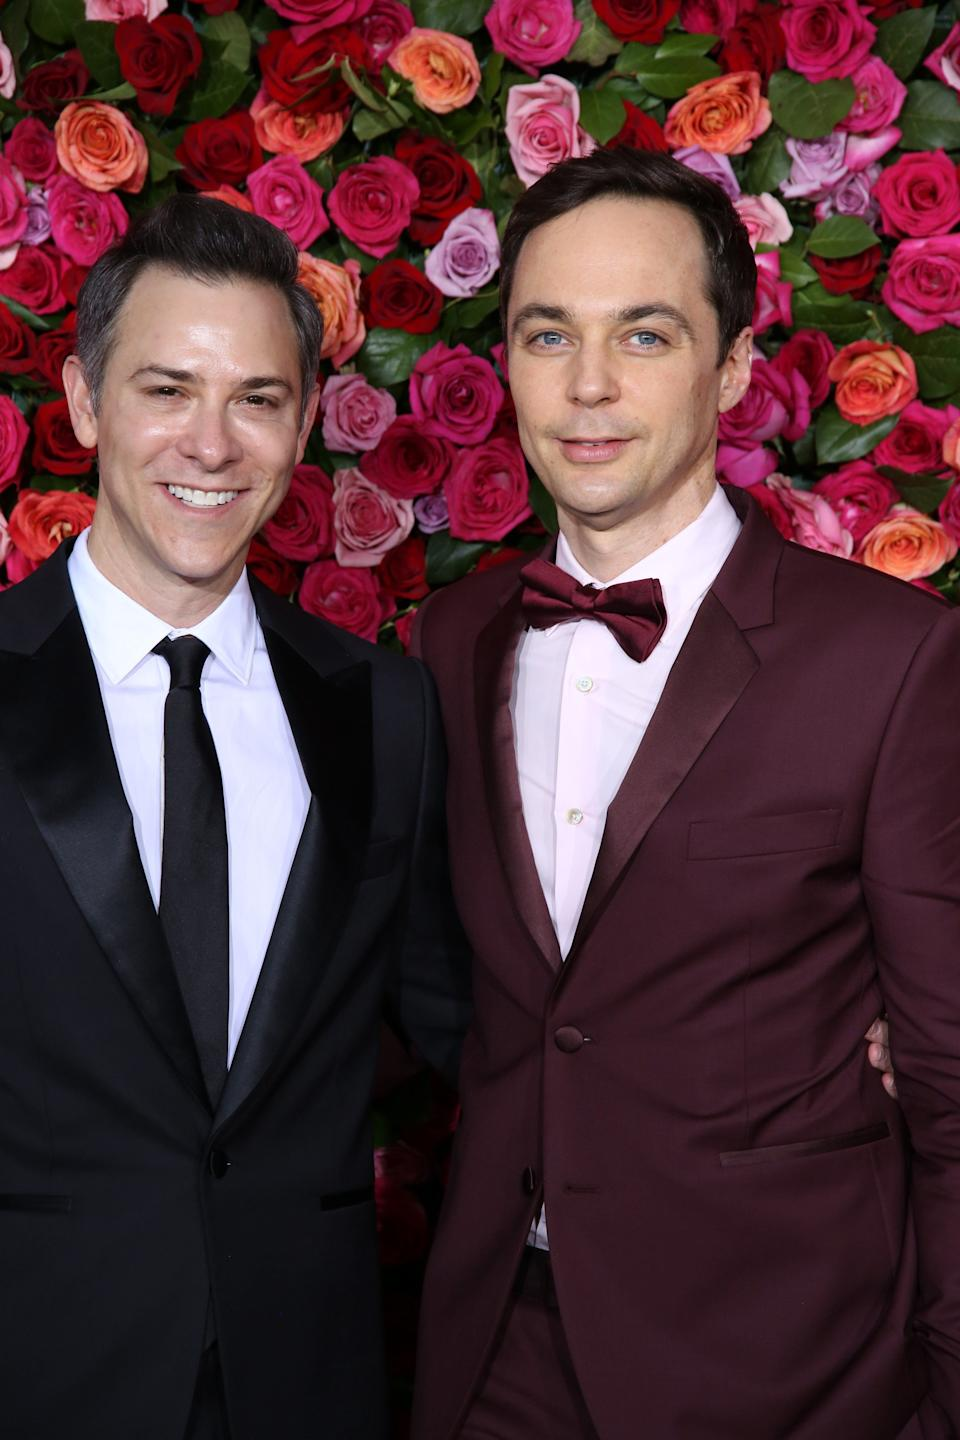 "<a href=""""The Big Bang Theory"""" target=""_blank"" rel=""noopener noreferrer"">""The Big Bang Theory""</a> star<a href=""https://www.huffpost.com/topic/jim-parsons"" target=""_blank"" rel=""noopener noreferrer""> Jim Parsons</a> and his <a href=""https://www.huffingtonpost.com/entry/jim-parsons-married_us_5918b806e4b0031e737e76ed"">husband Todd Spiewak</a> were together for nearly 15 years before they decided to <a href=""https://www.businessinsider.com/jim-parsons-just-got-married-to-his-partner-of-14-years-2017-5"" target=""_blank"" rel=""noopener noreferrer"">get hitched in March 2017</a>.<br /><br><br><br />In an interview with <a href=""https://people.com/tv/jim-parsons-opens-up-about-todd-spiewak-marriage/"" target=""_blank"" rel=""noopener noreferrer"">Stephen Colbert later that year,</a> the actor opened about why he and Spiewak took their time getting married.<br /><br><br><br />""We just didn't care about the act of it that much, to be honest with you,"" <a href=""https://people.com/tv/jim-parsons-opens-up-about-todd-spiewak-marriage/"" target=""_blank"" rel=""noopener noreferrer"">Parsons said</a>. ""That sounds cold in a way but I finally thought: 'Well, let's have a party then for the celebration and we'll go ahead and legalize this thing.'""<br /><br><br><br />But Parsons said getting married ended up being ""more meaningful in the moment"" than he could have predicted.<br /><br><br><br />""It's been resonantly much more meaningful than for me afterward than I ever saw coming,"" <a href=""https://people.com/tv/jim-parsons-opens-up-about-todd-spiewak-marriage/"" target=""_blank"" rel=""noopener noreferrer"">he said</a>. ""You know, I had been an adult gay person for so long at a time where that wasn't possible where life was 'fine' for me."""